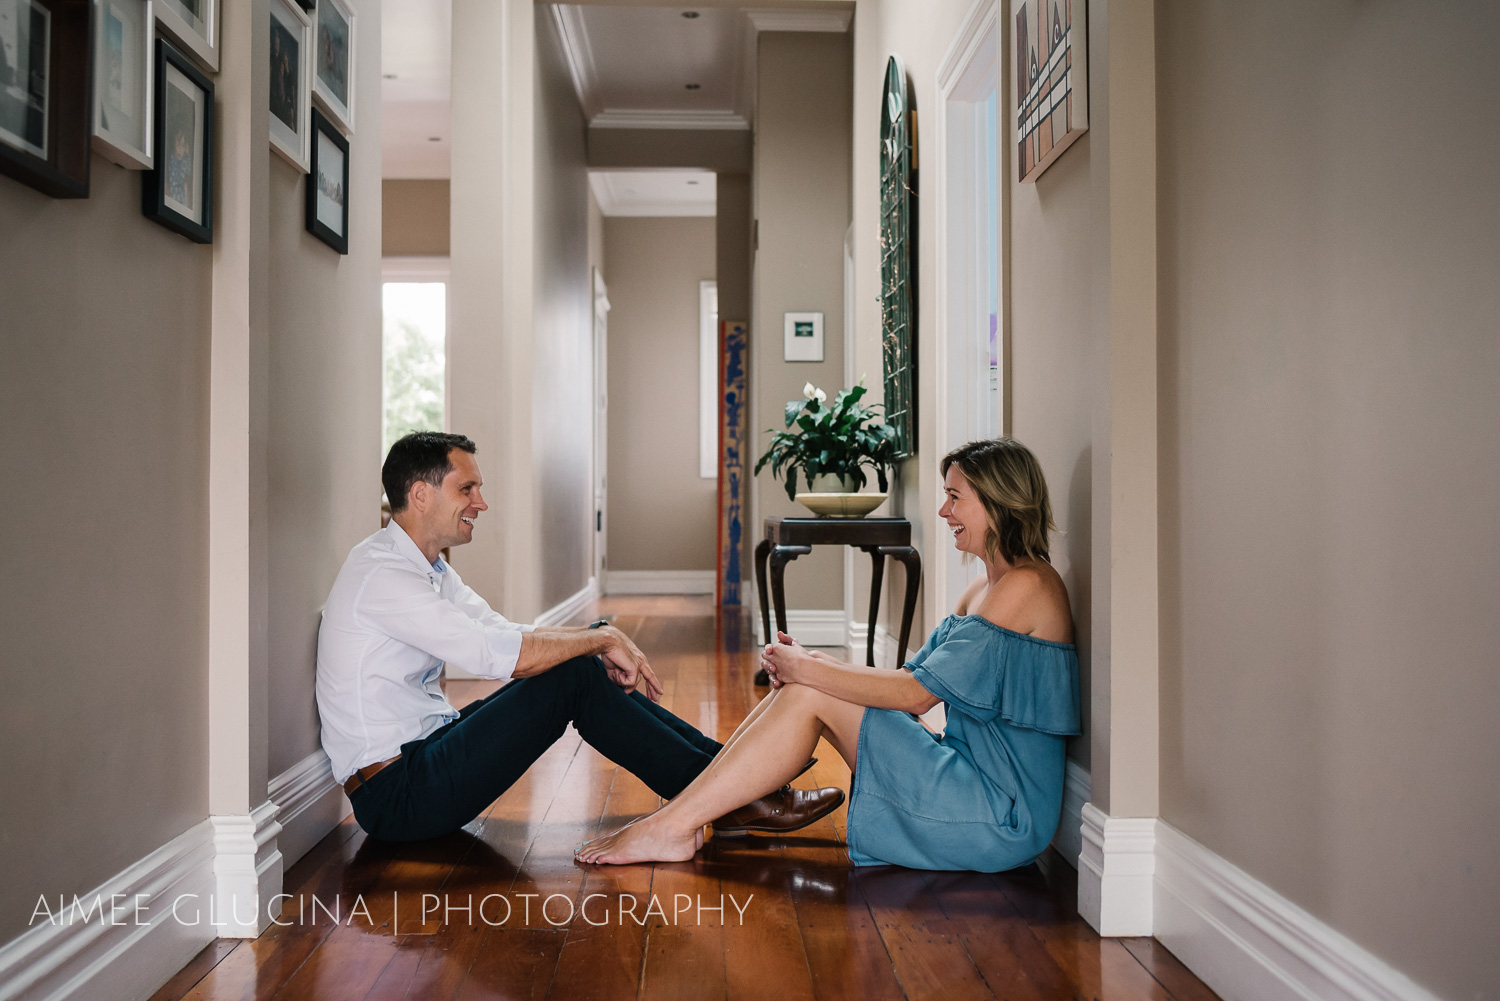 Baudinet Family Session by Aimee Glucina Photography-9.jpg